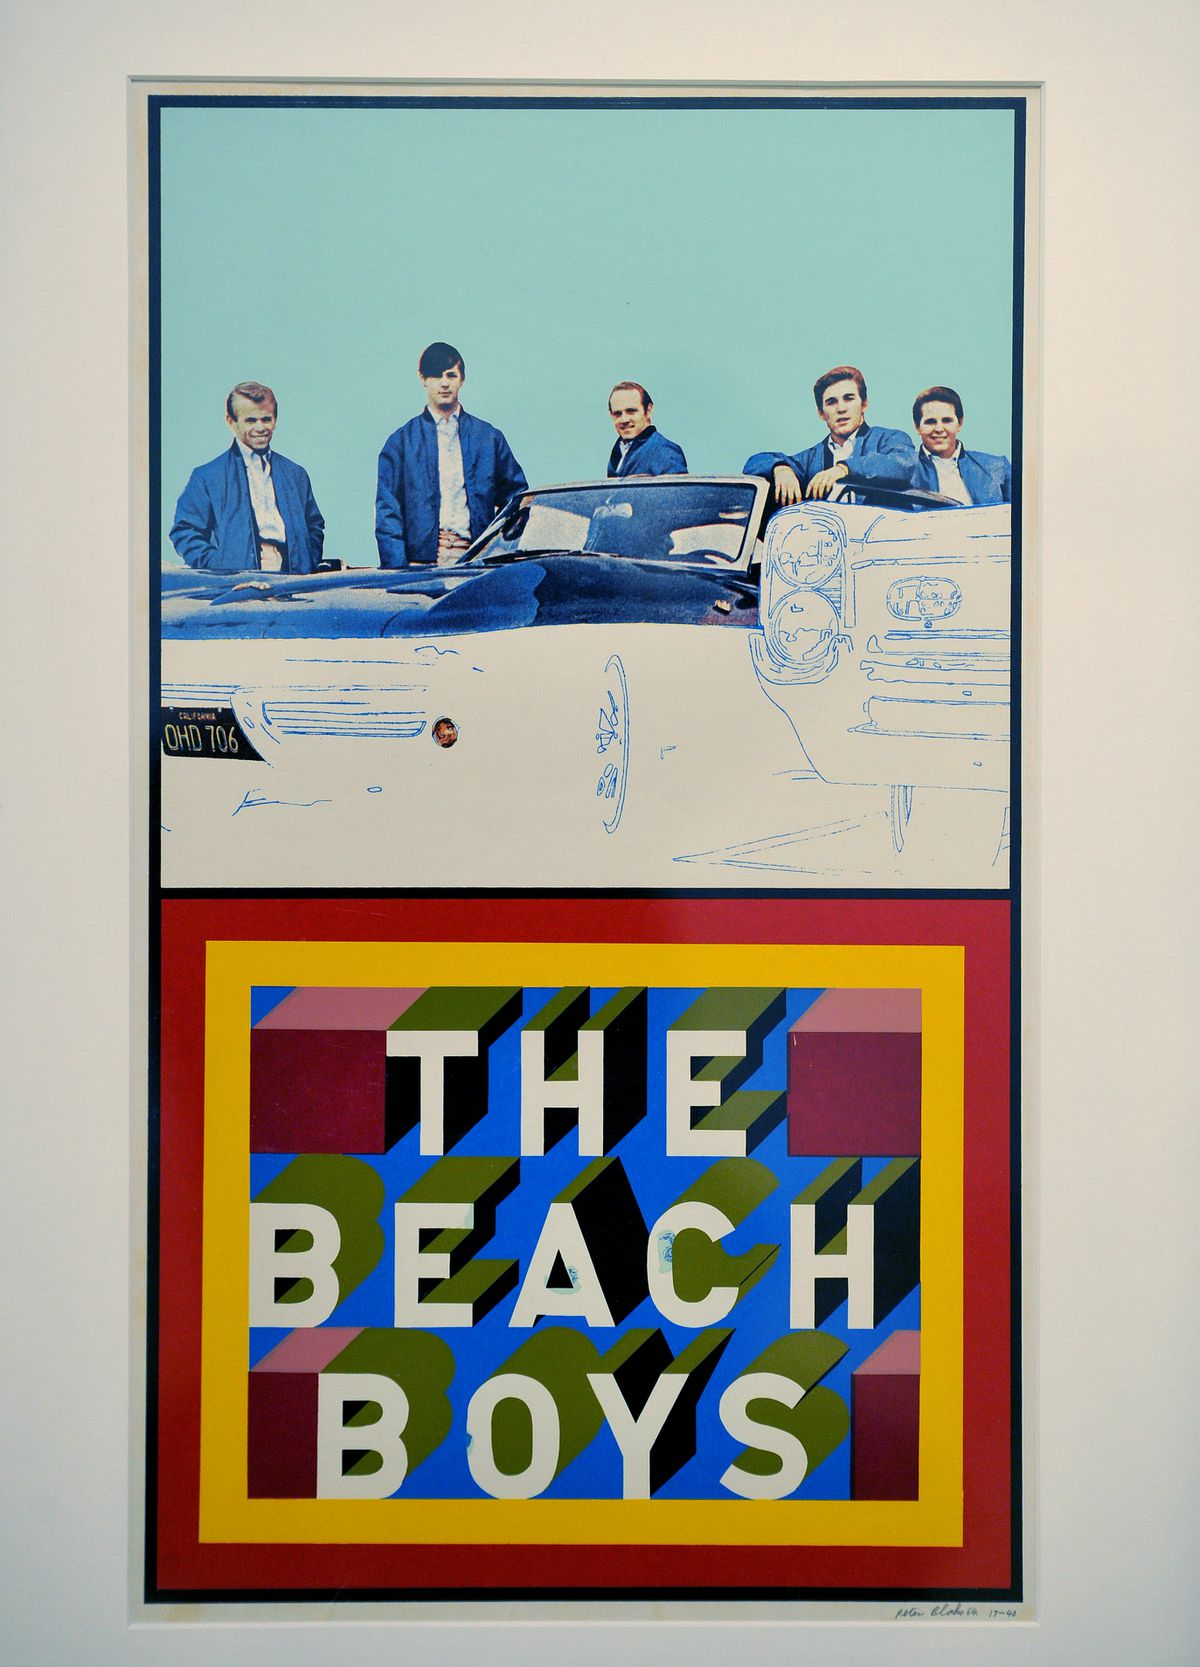 The Fantasy Pop exhibition at Wolverhampton Art Gallery..The Beach Boys, by Peter Blake, 1964